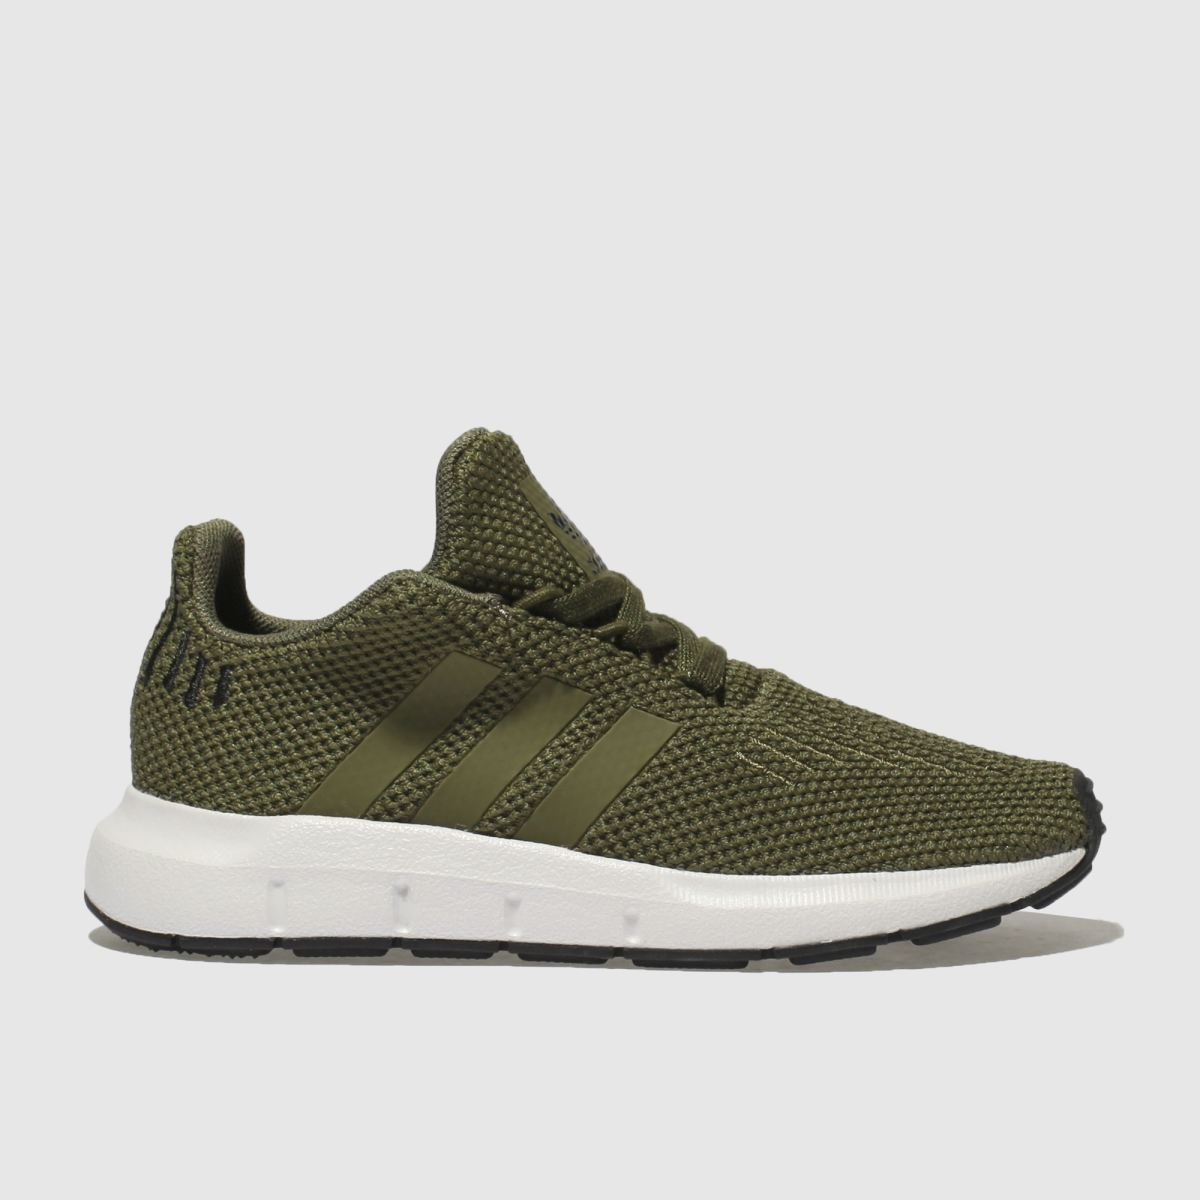 Adidas Khaki Swift Run Unisex Toddler Toddler